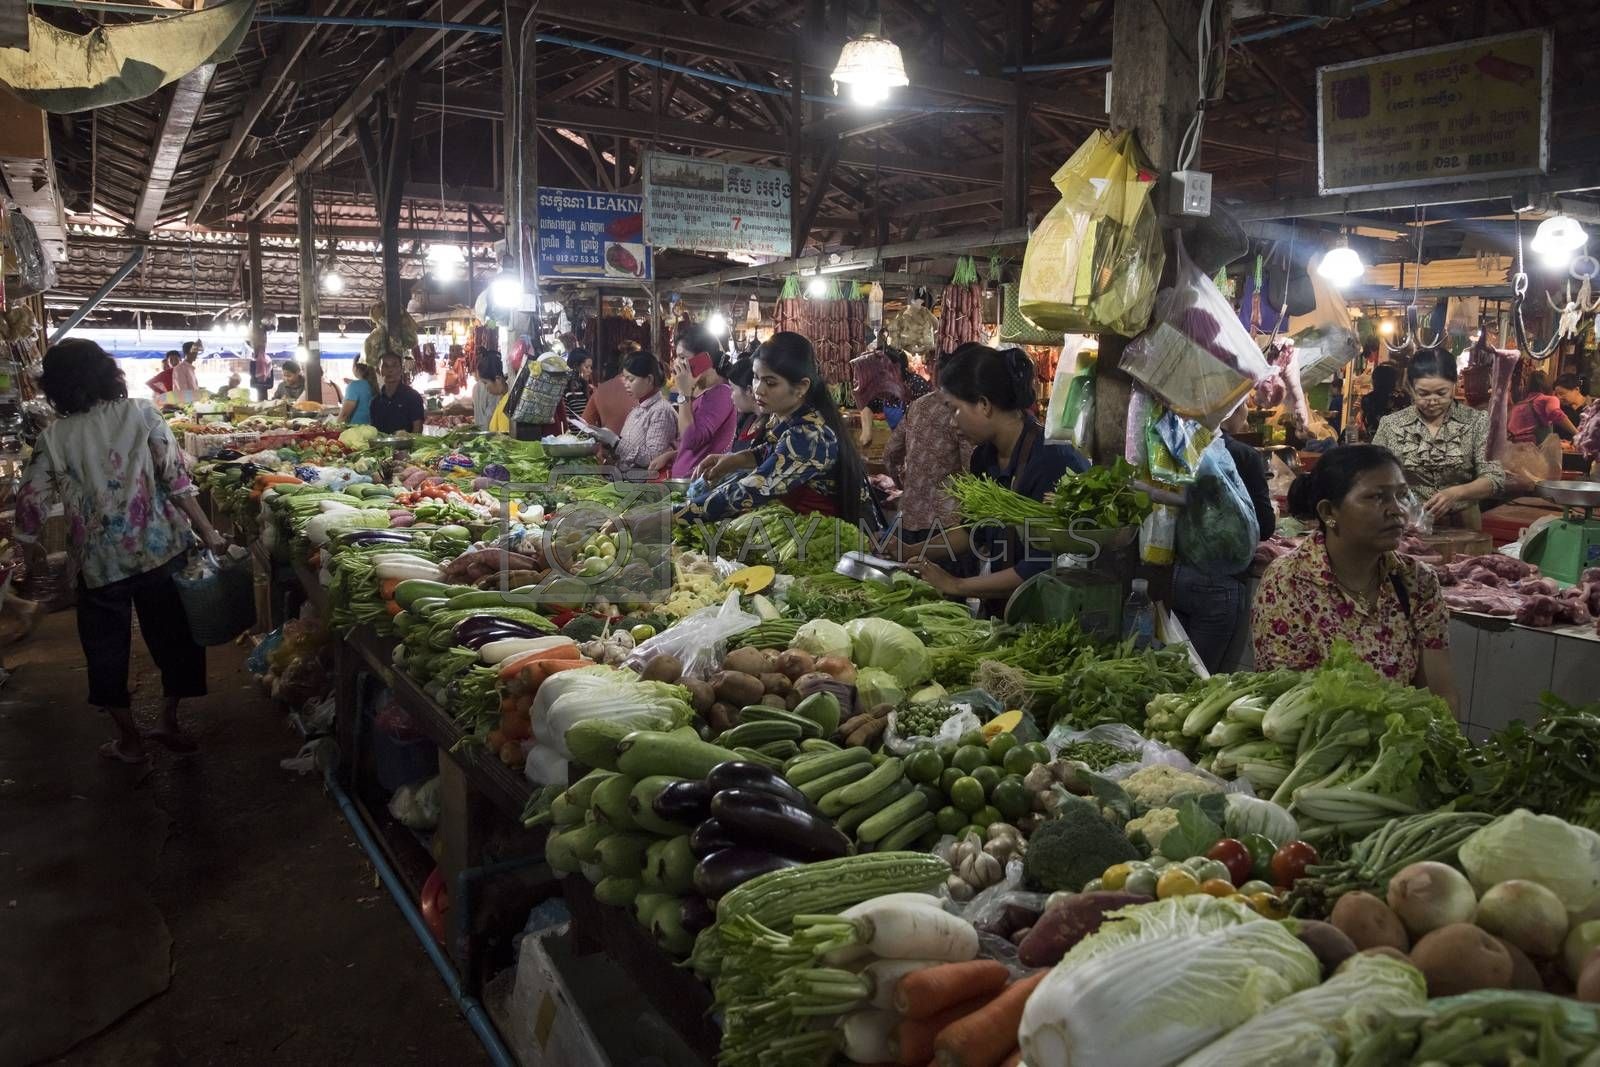 Siem Reap, Cambodia, 28 March 2018. Fruits and vegetables displays at the Fresh Food Market